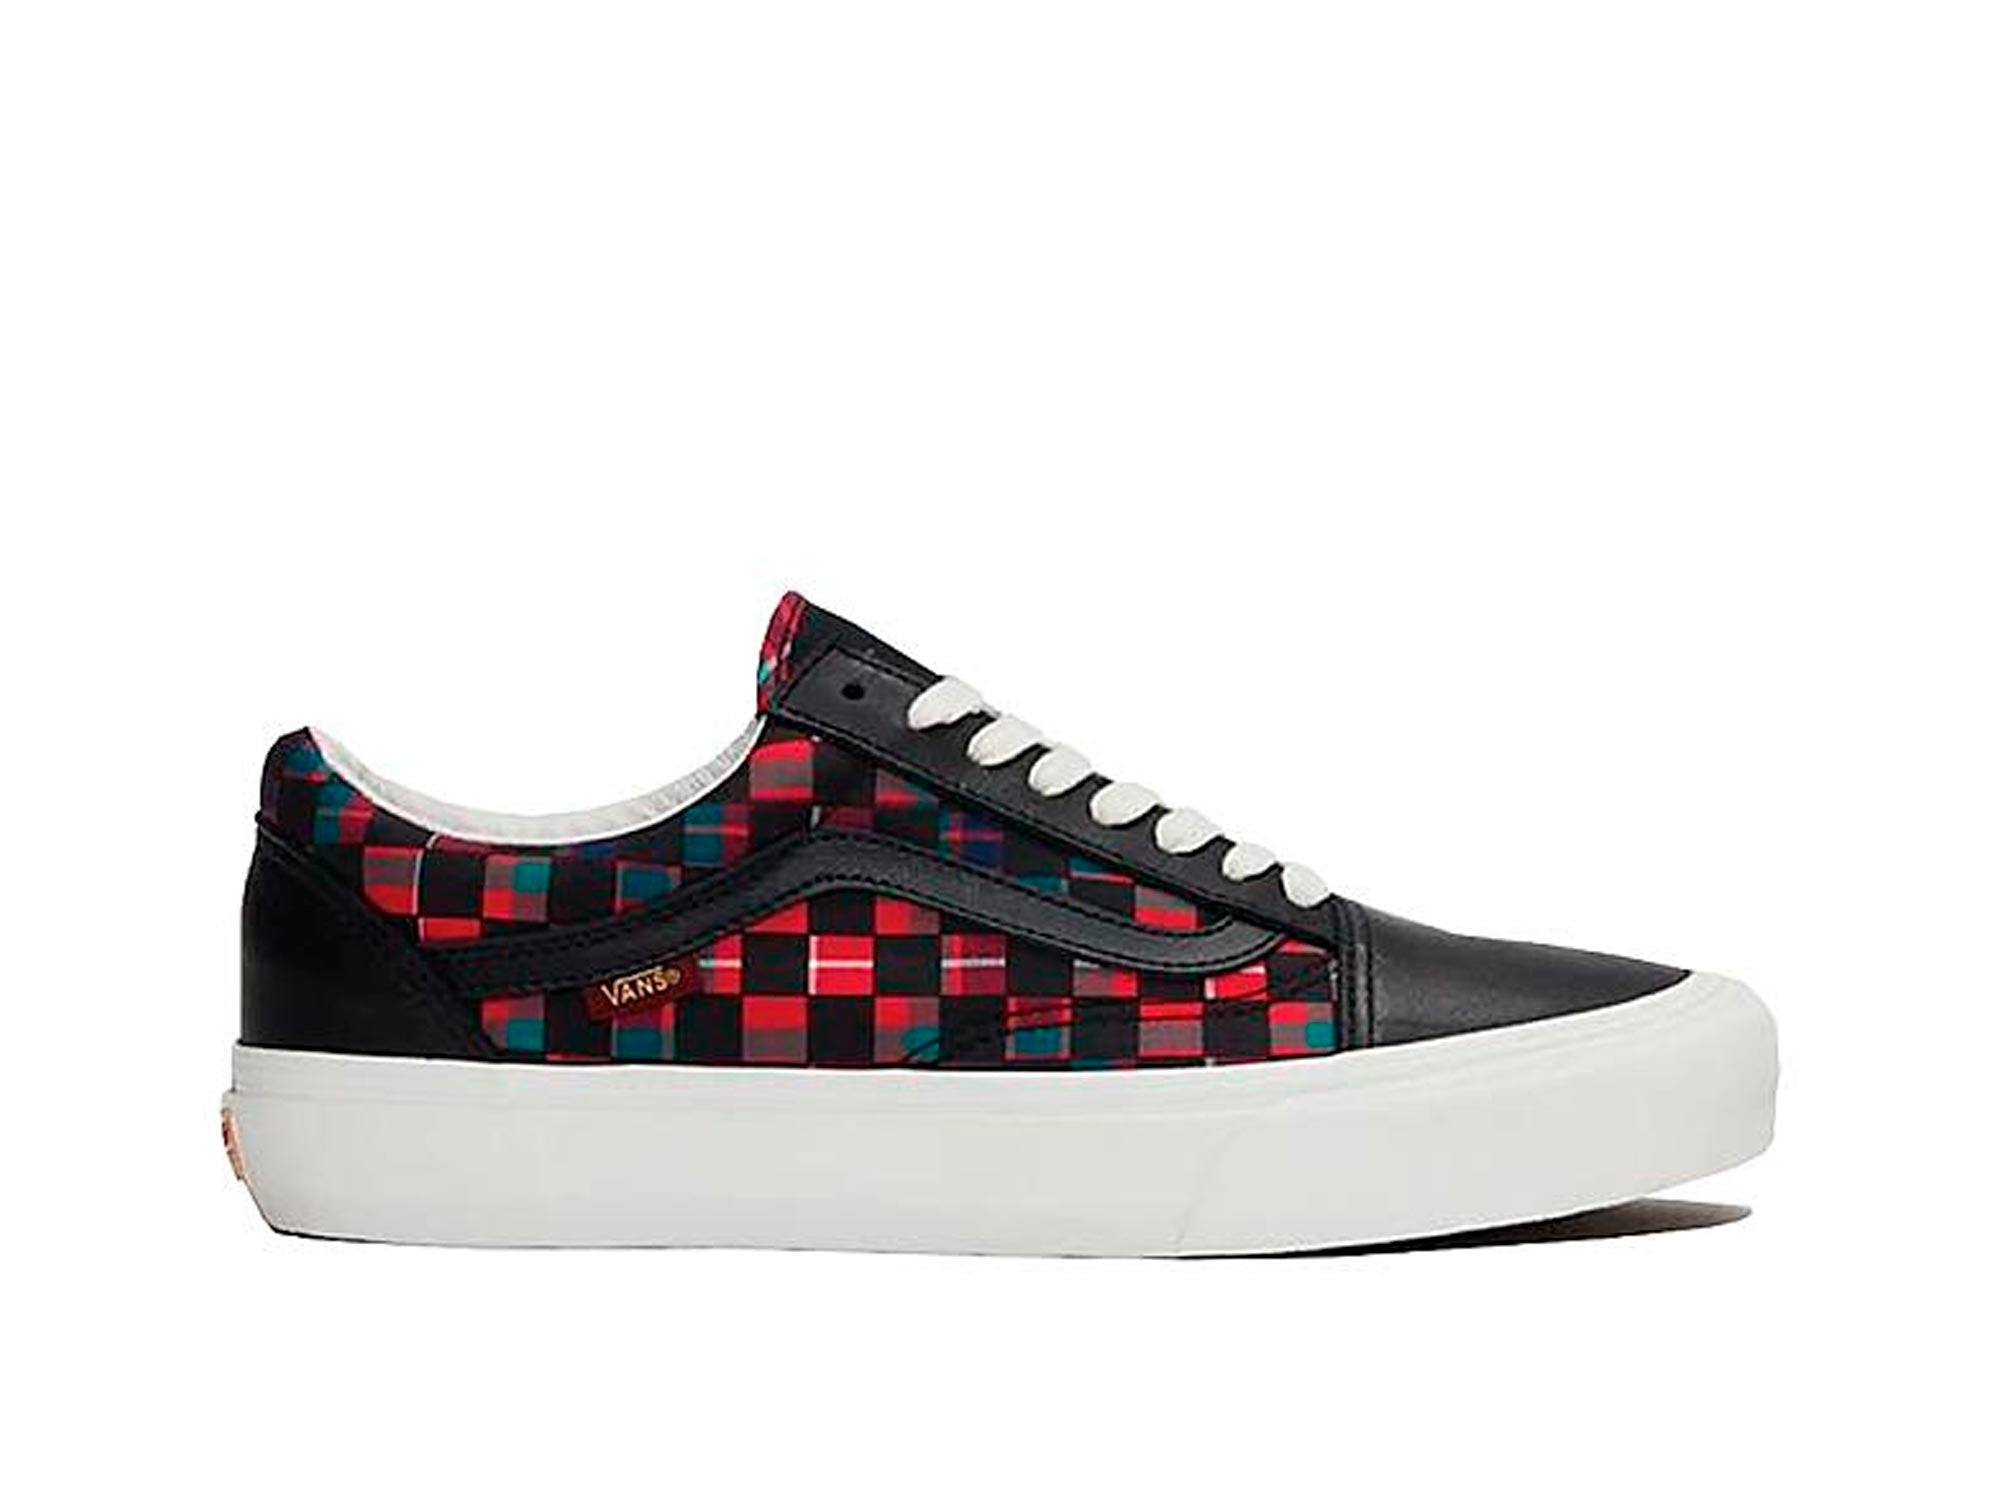 Zapatilla Vans Old Skool Checker (Baracuta) Unisex Negro